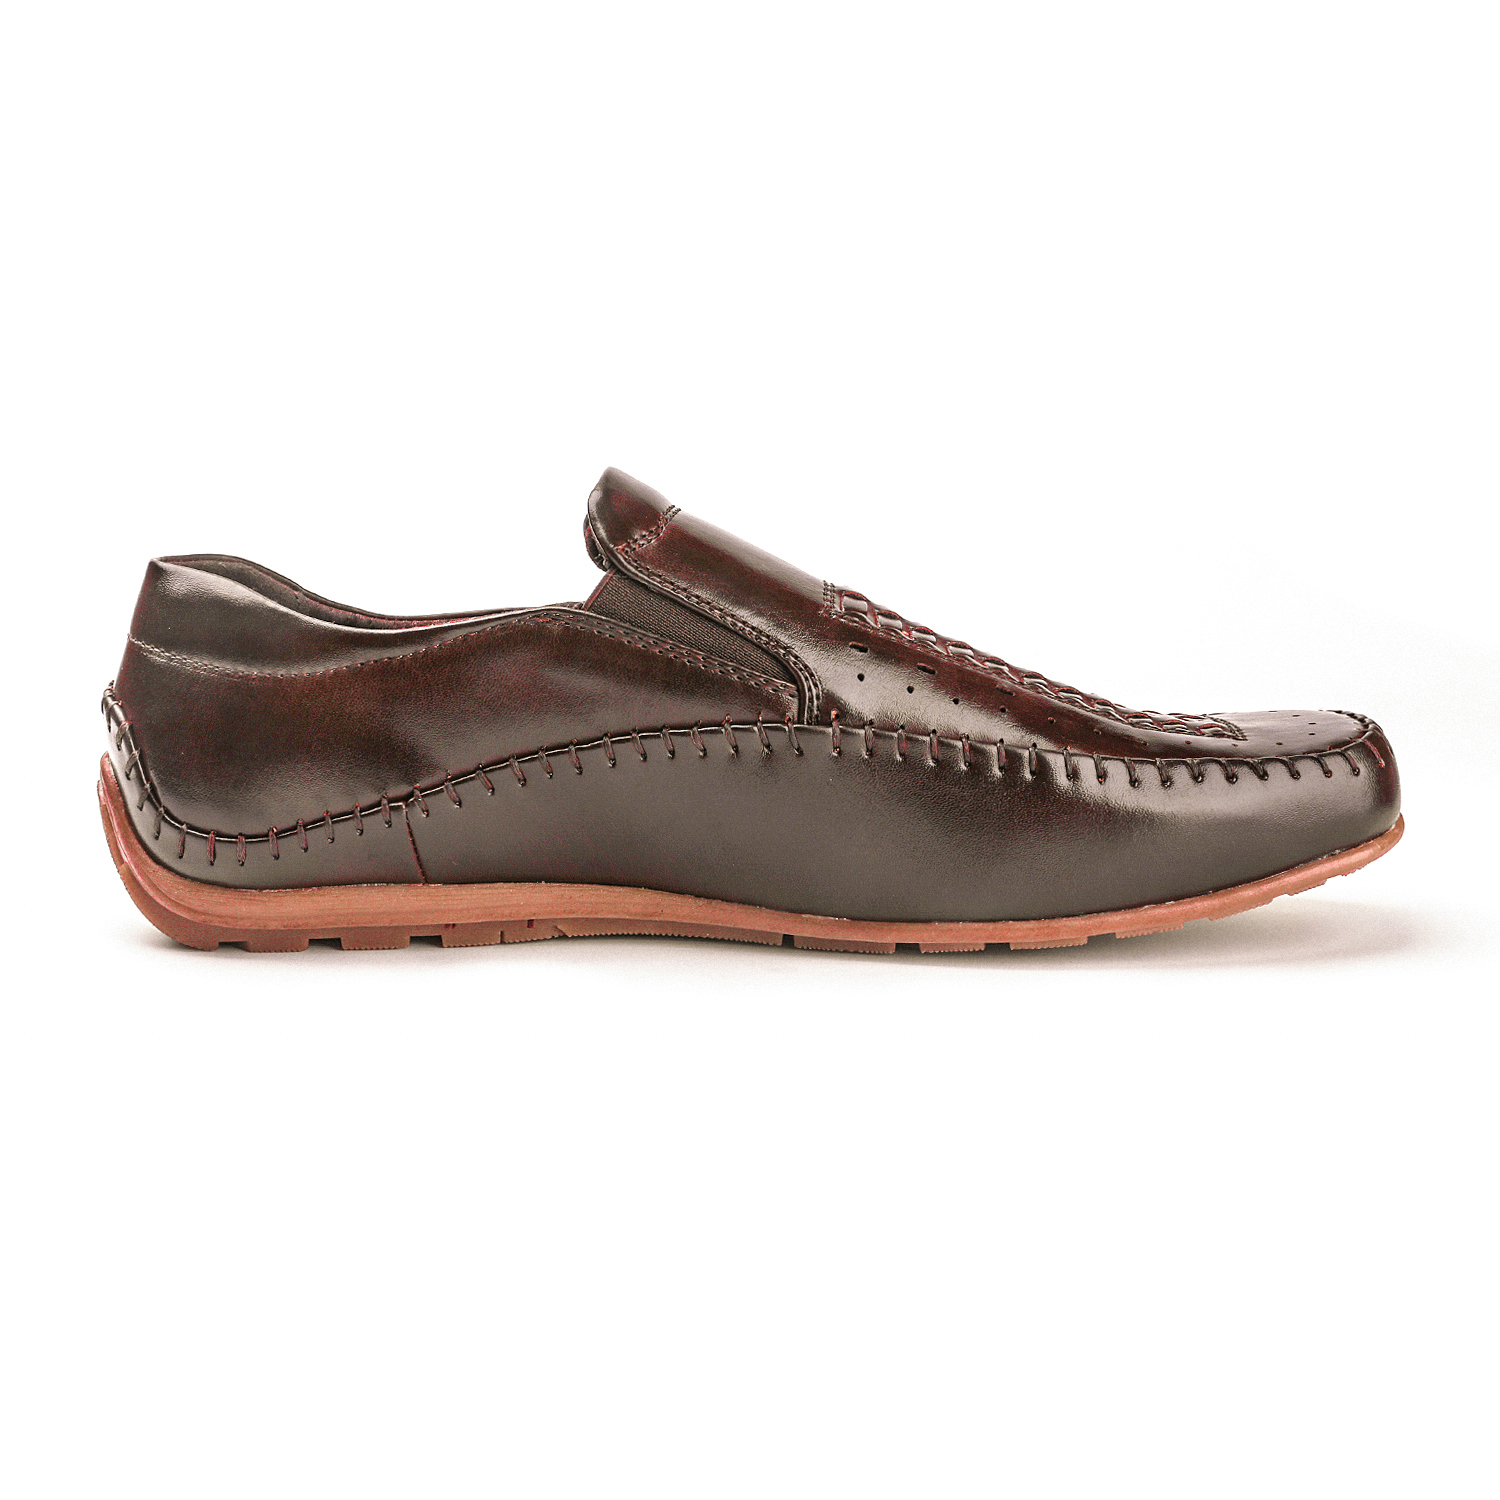 Bruno-Marc-Mens-Penny-Light-Loafers-Moccasins-Driving-Flats-Slip-On-Casual-Shoes thumbnail 30